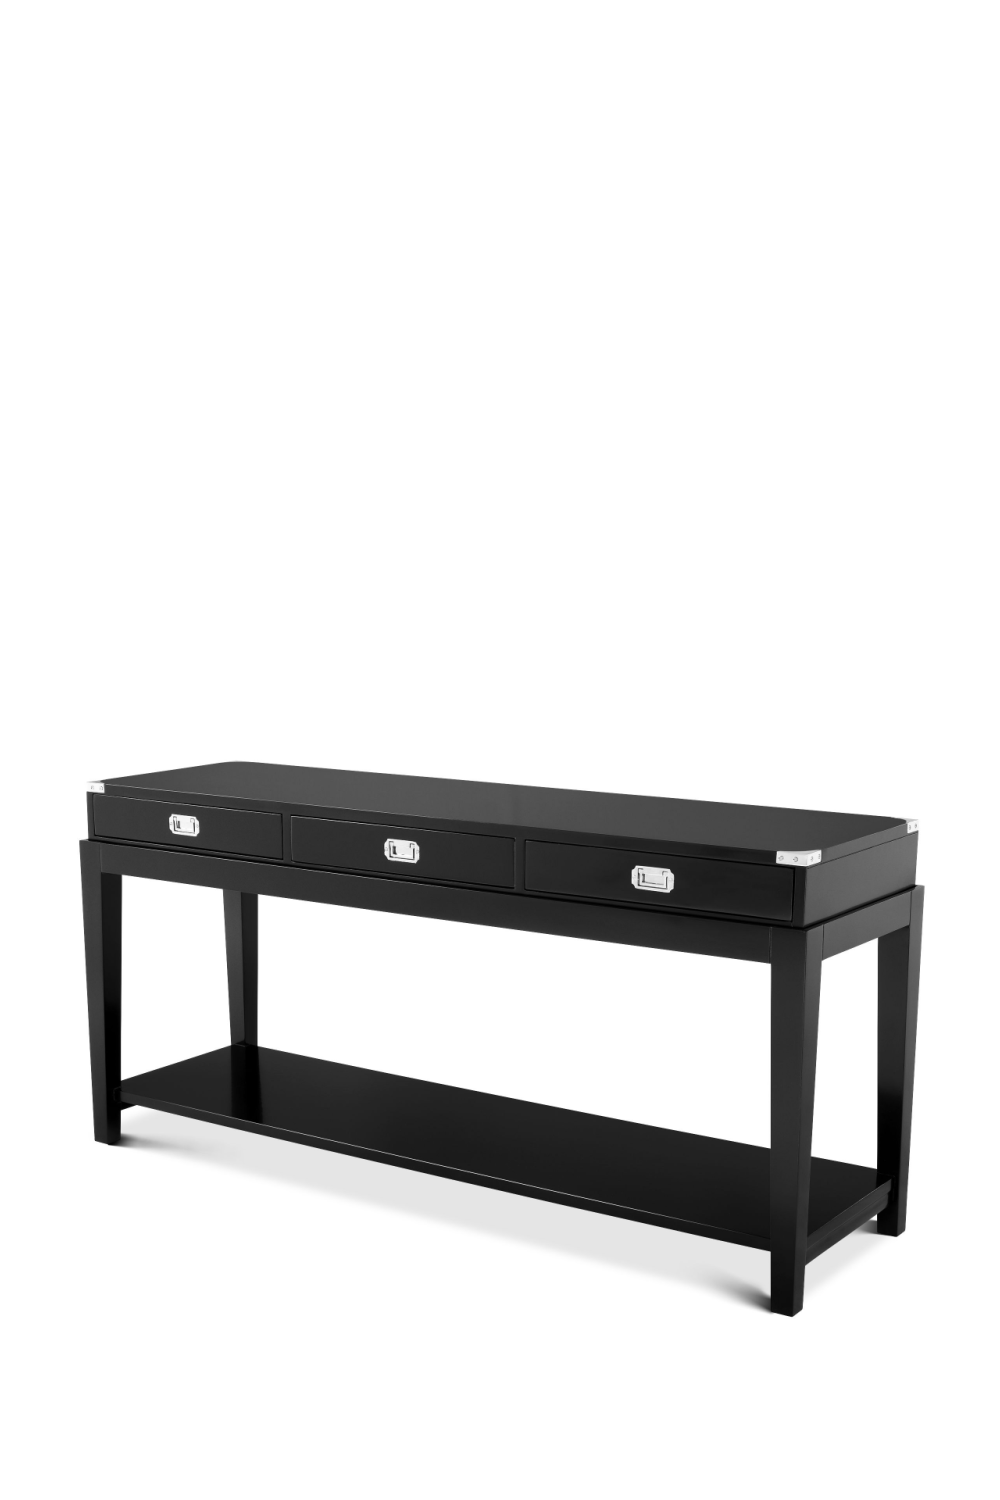 Black Console Table | Eichholtz Military | #1 Eichholtz Retailer